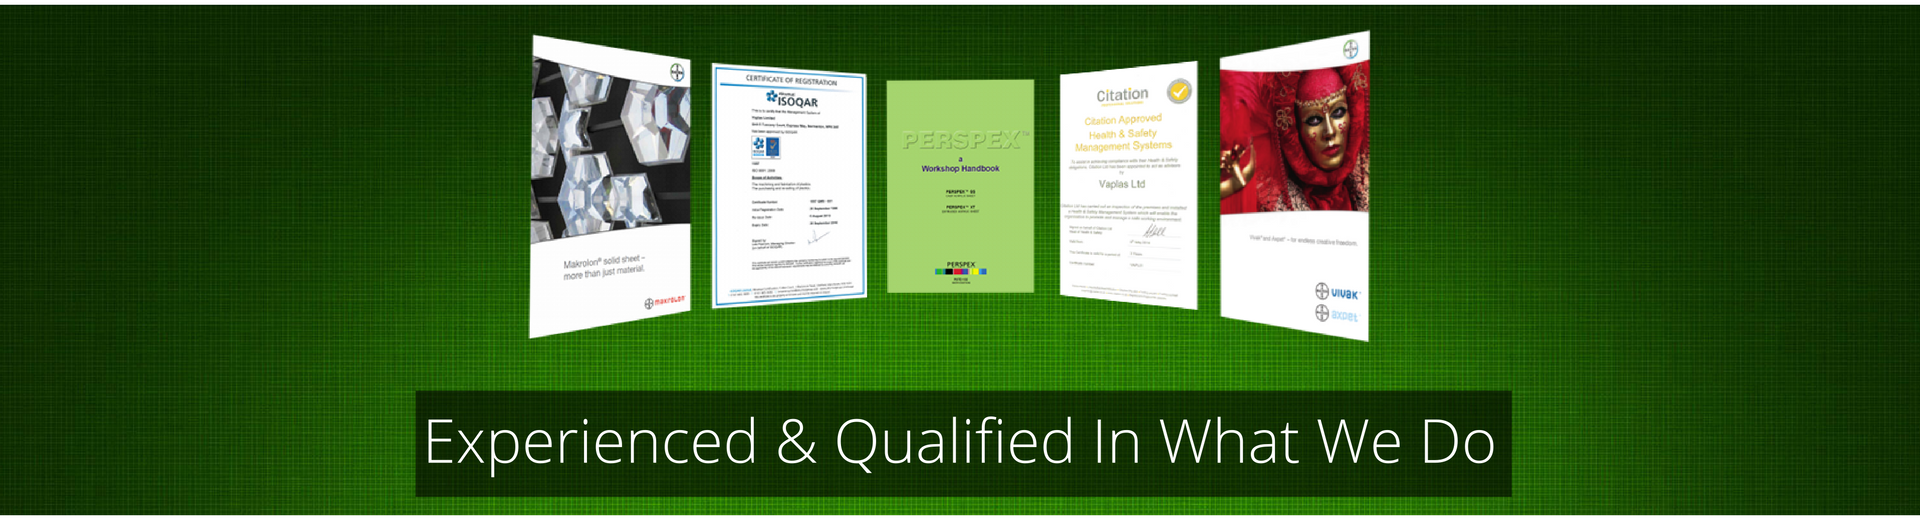 Experienced and Qualified in what we do